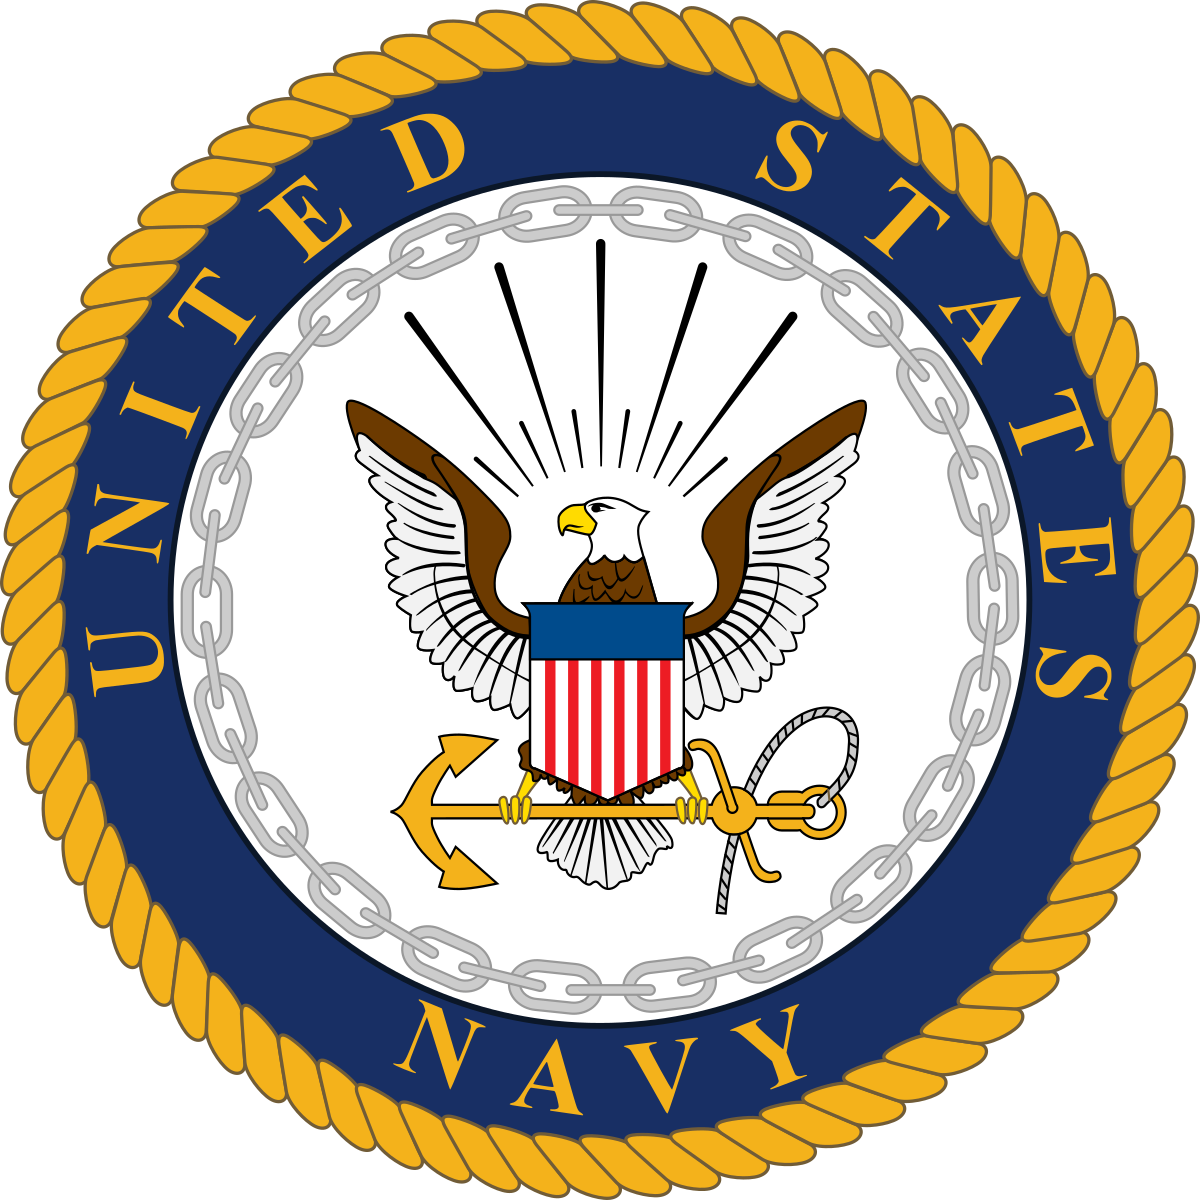 military logo, united states navy wikipedia #25301